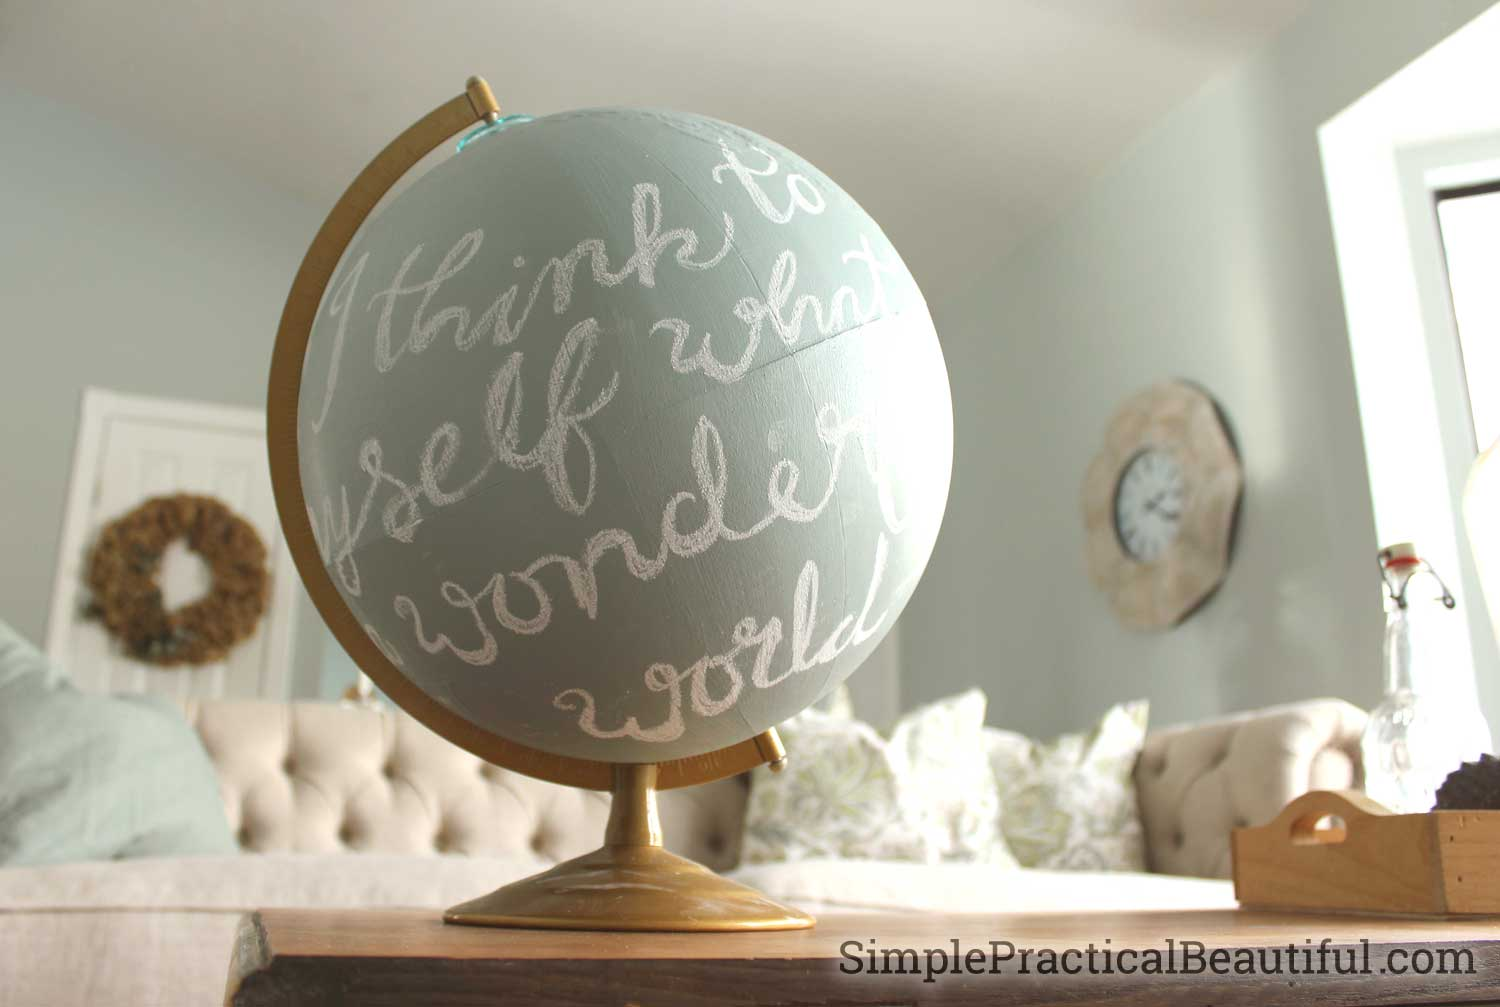 Transform an old globe into home decor by refinishing with chalk paint